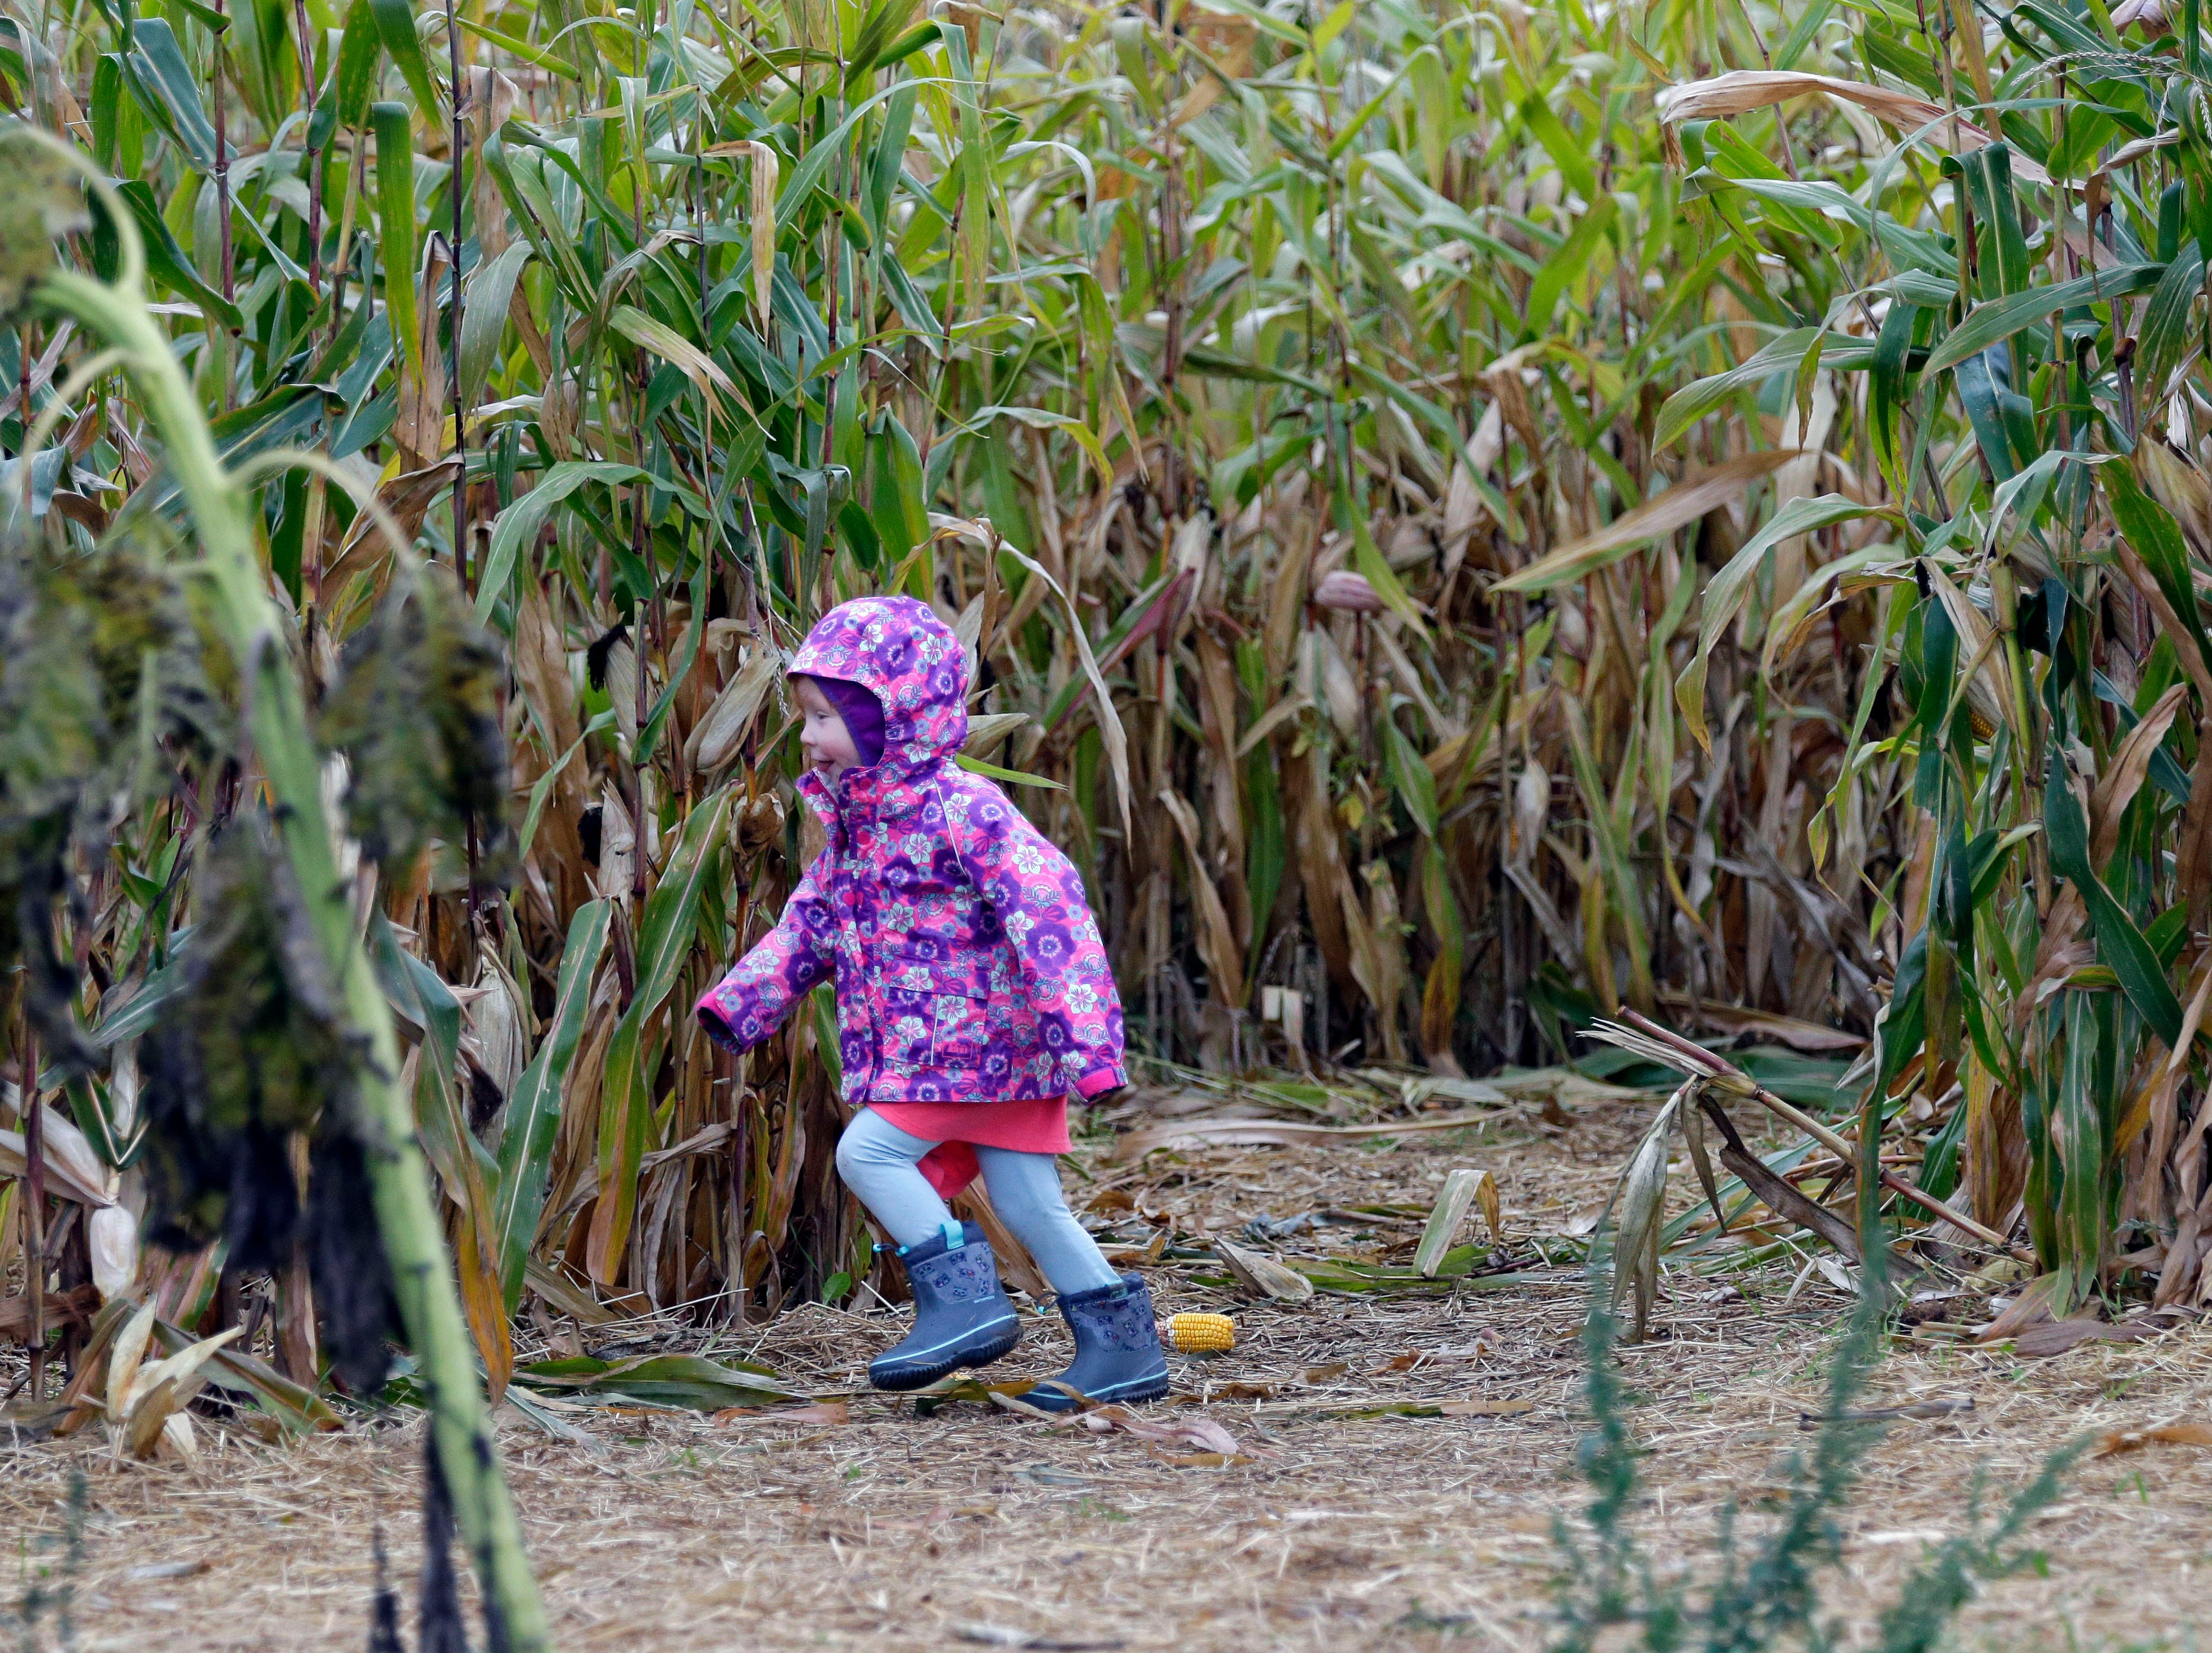 Carly McCallum of Appleton runs through the corn maze Sunday, September 30, 2018, at Star Orchard in Kaukauna, Wis.Ron Page/USA TODAY NETWORK-Wisconsin